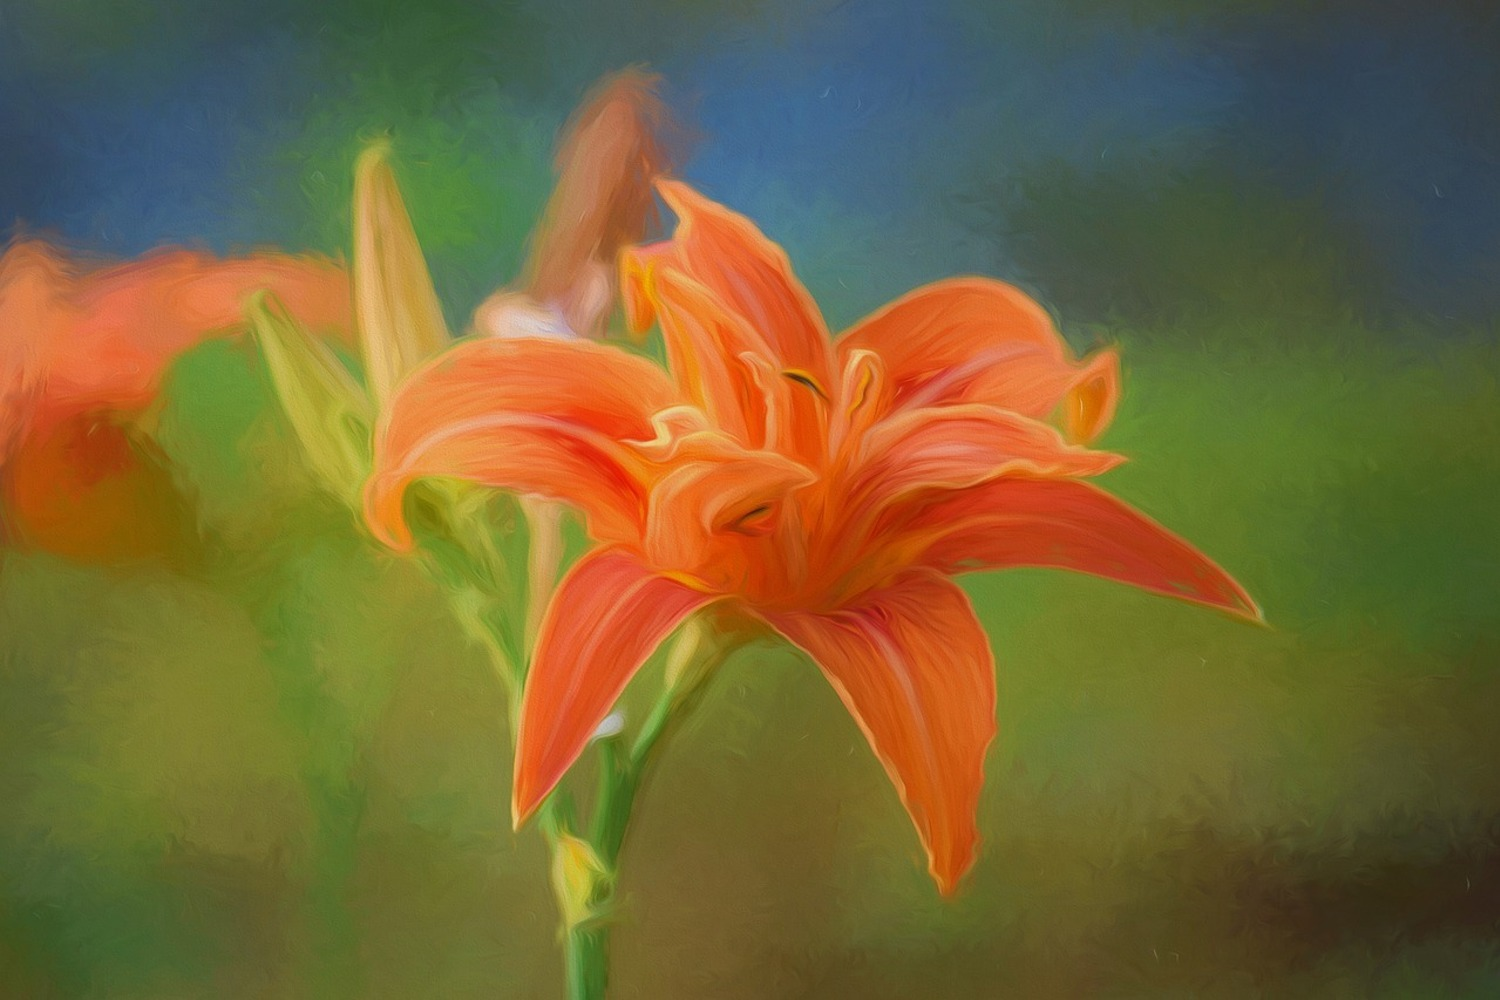 Photo Wallpaper Painting of a lily